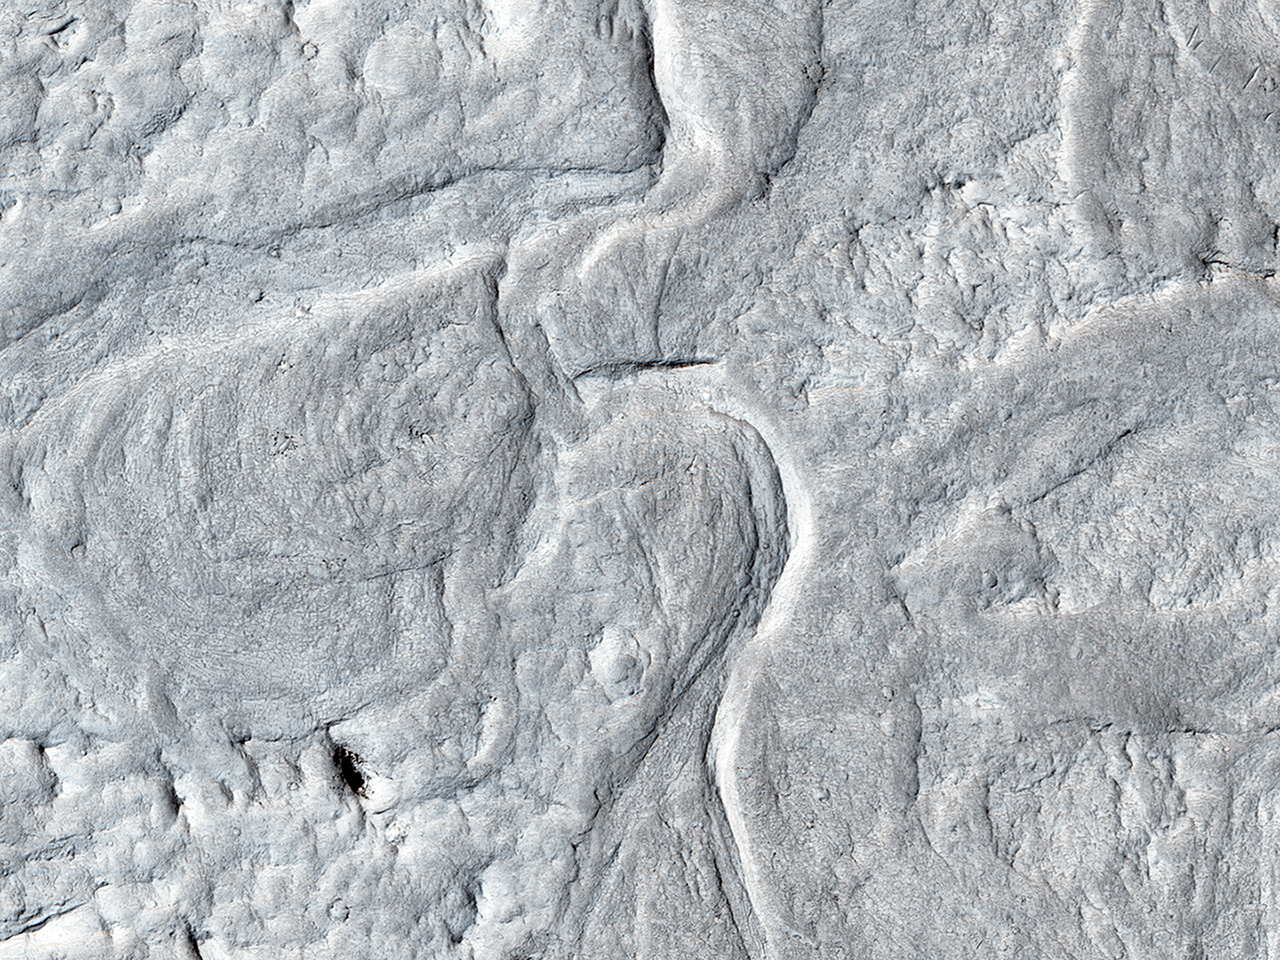 Sinuous Ridges and Meanders